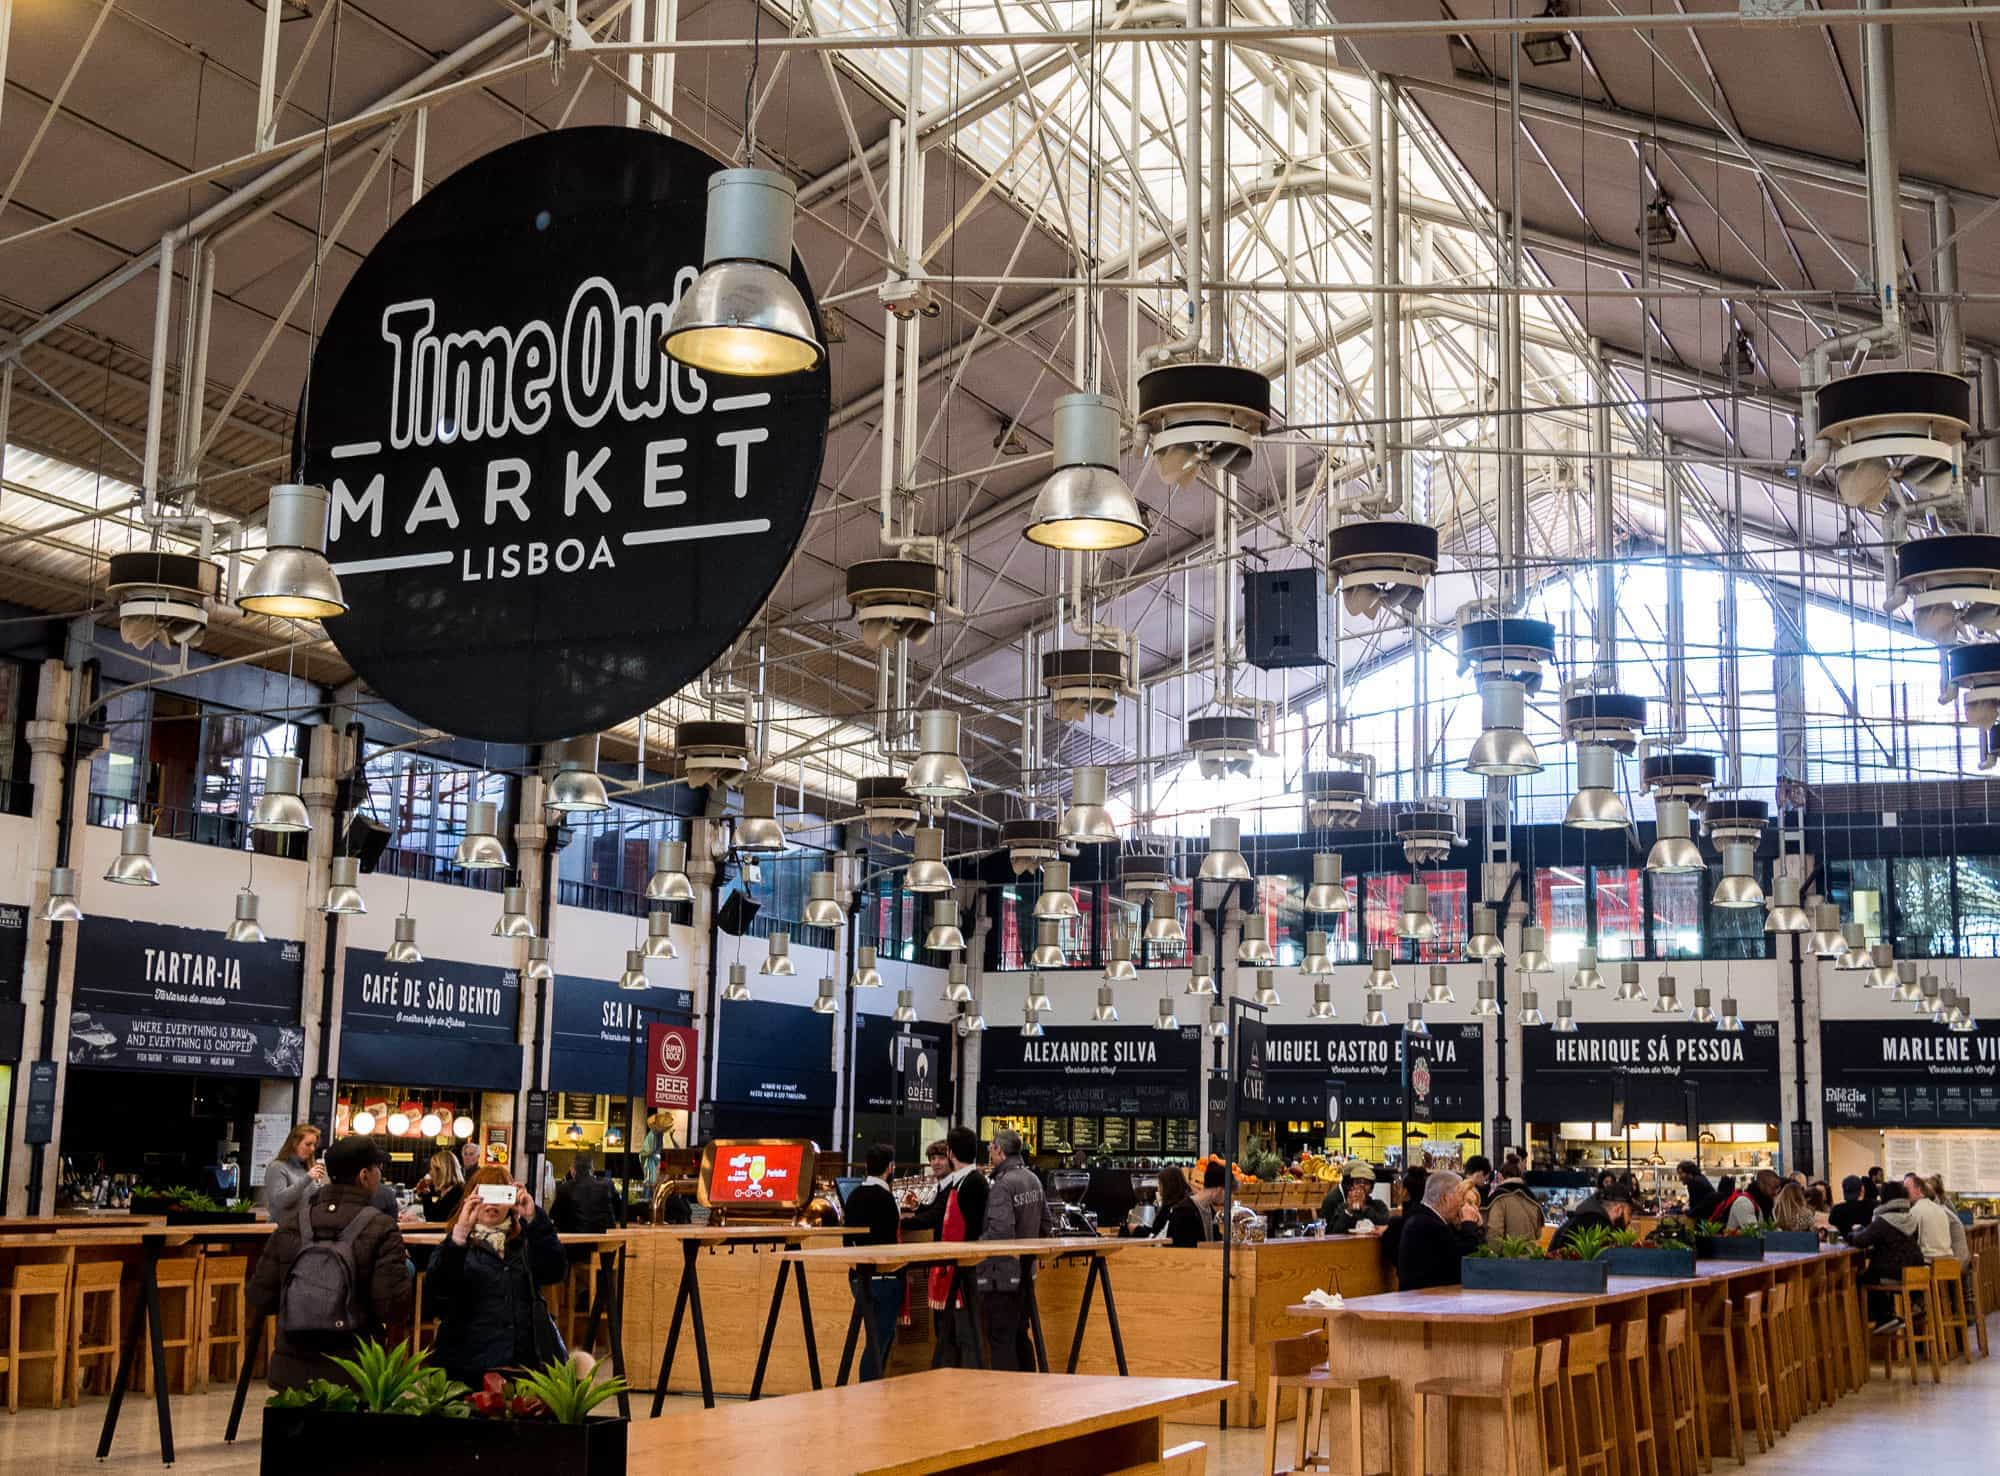 Timeout Market In Lisbon Is Impressive But Not Very Vegetarian Friendly